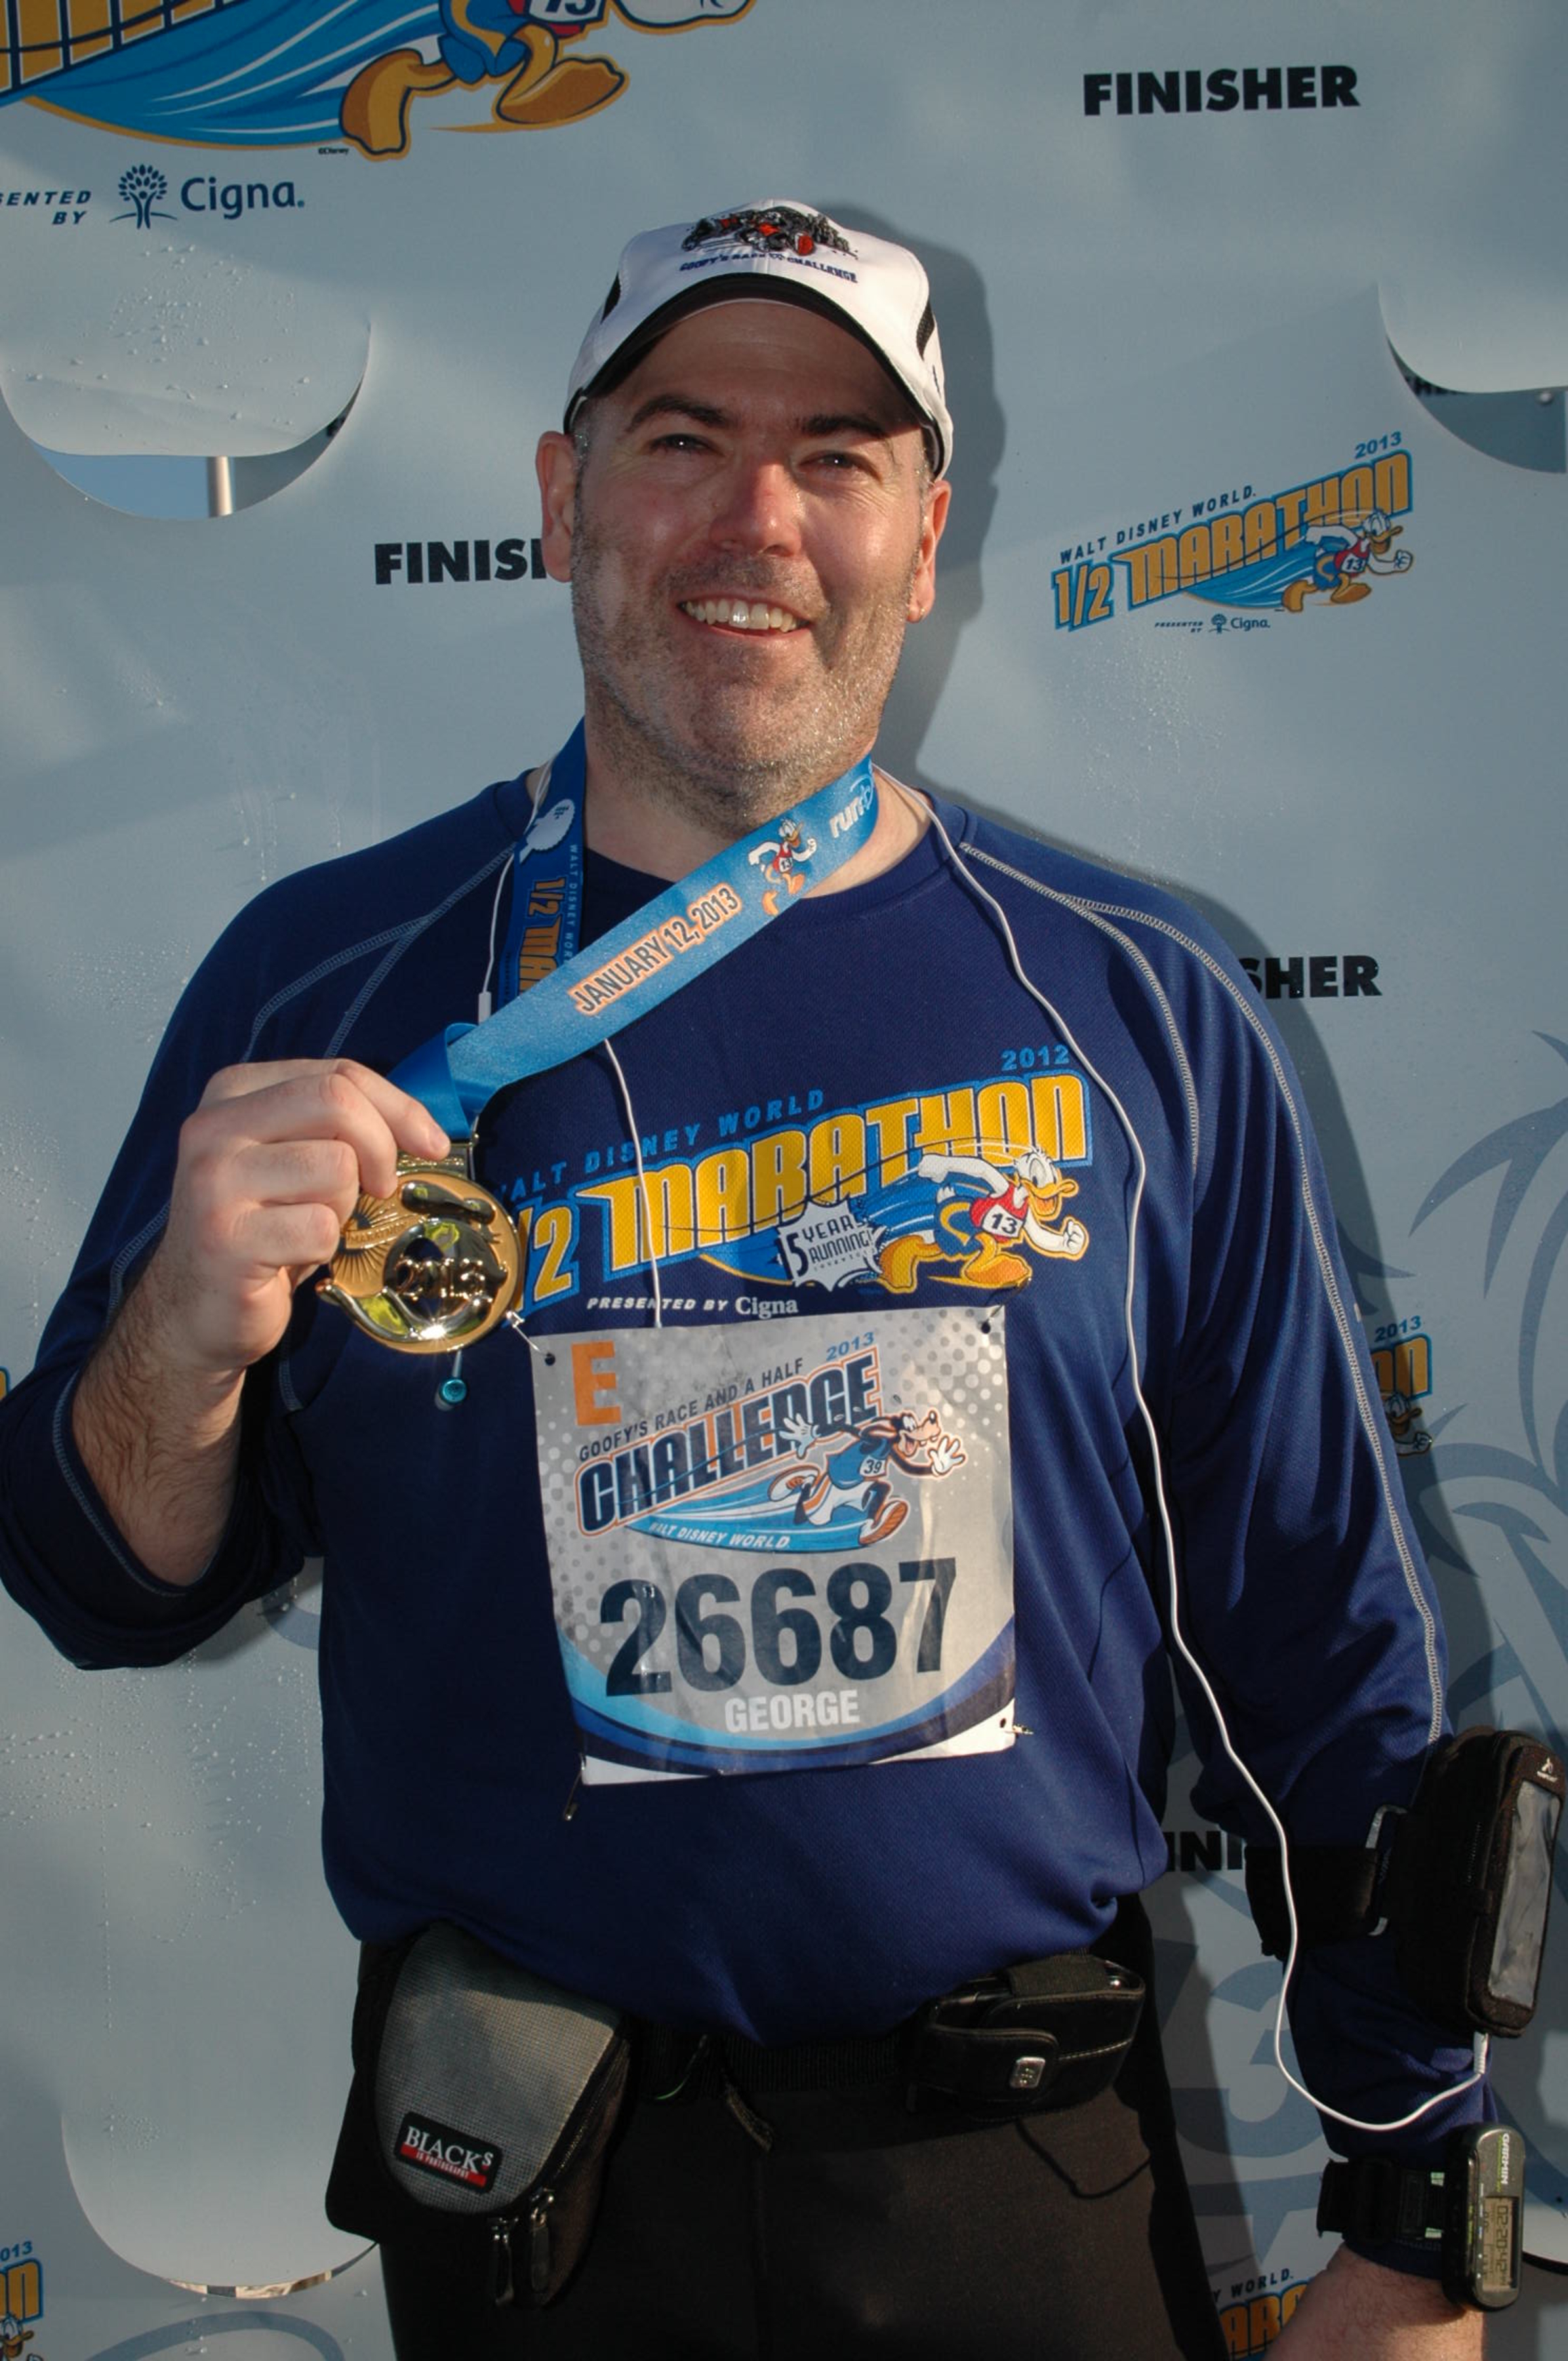 2013 Disney World Half Marathon - completed